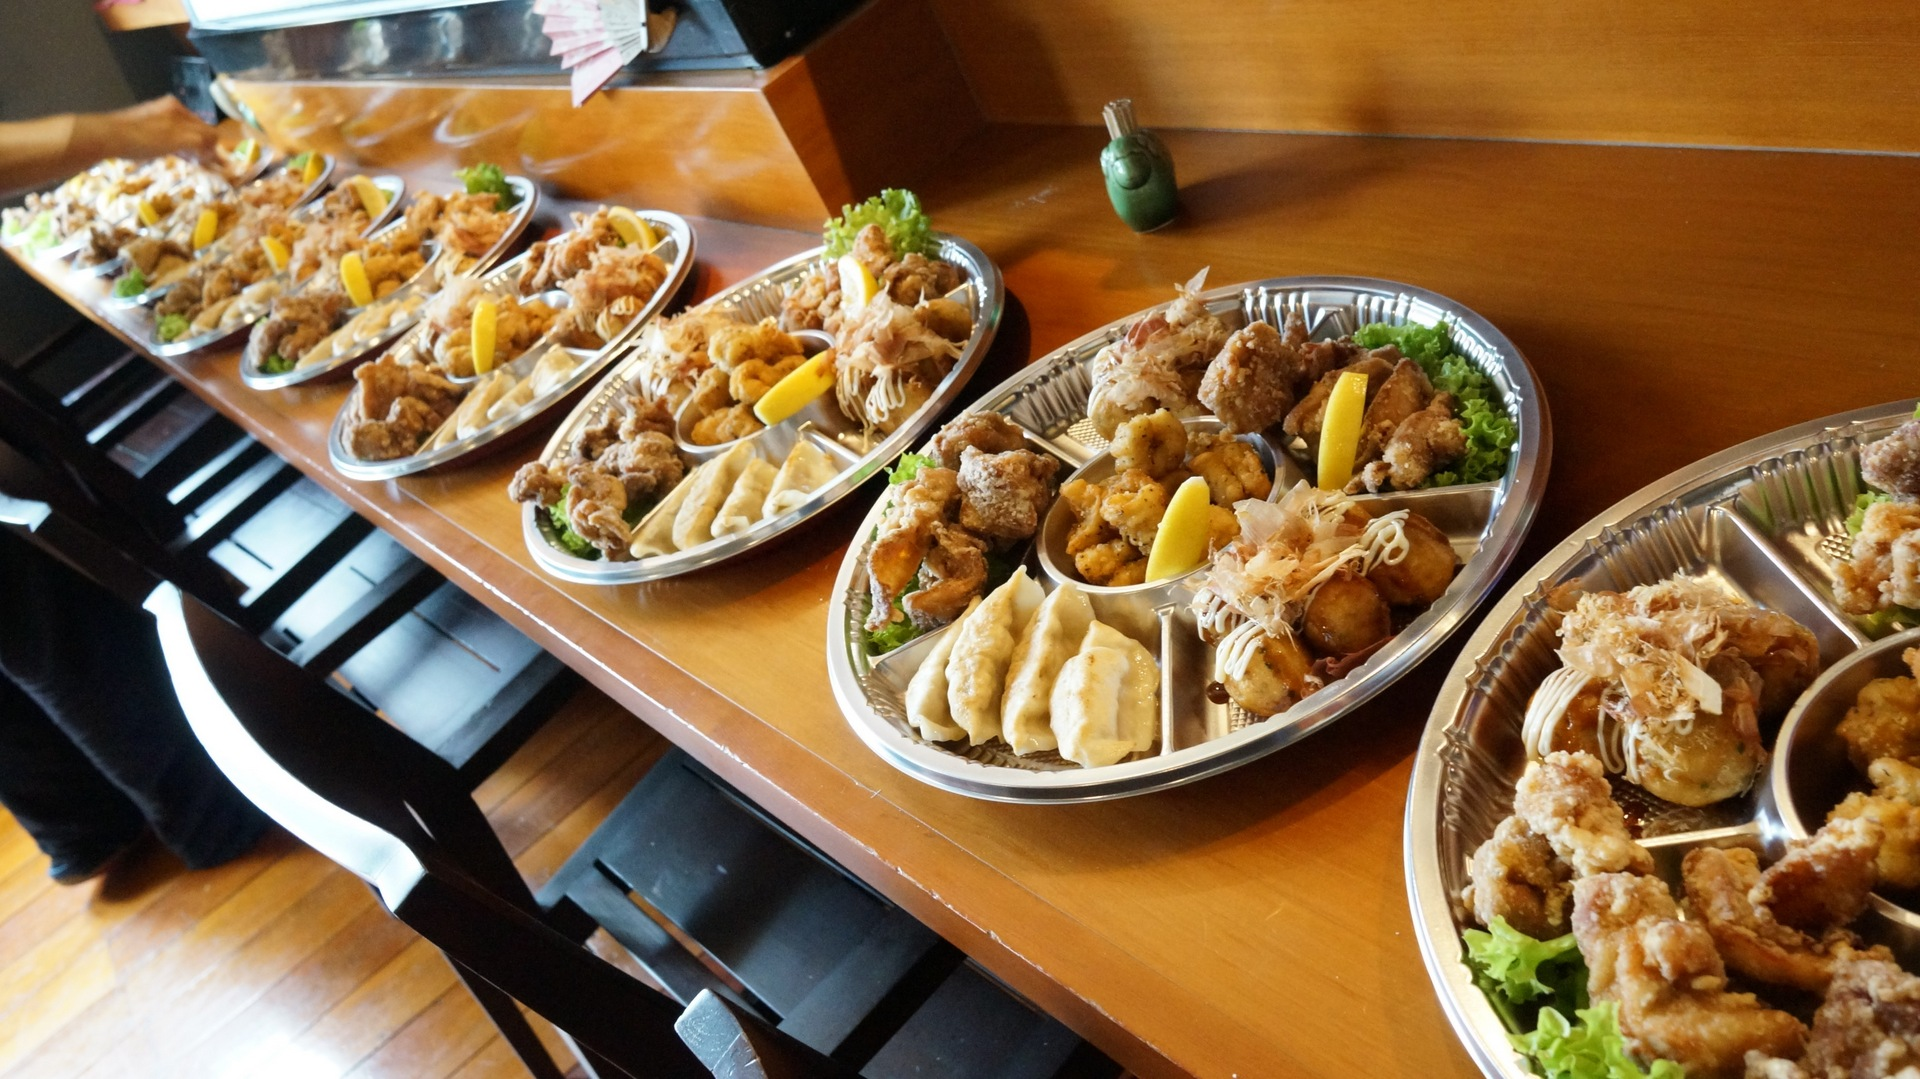 Catering order available